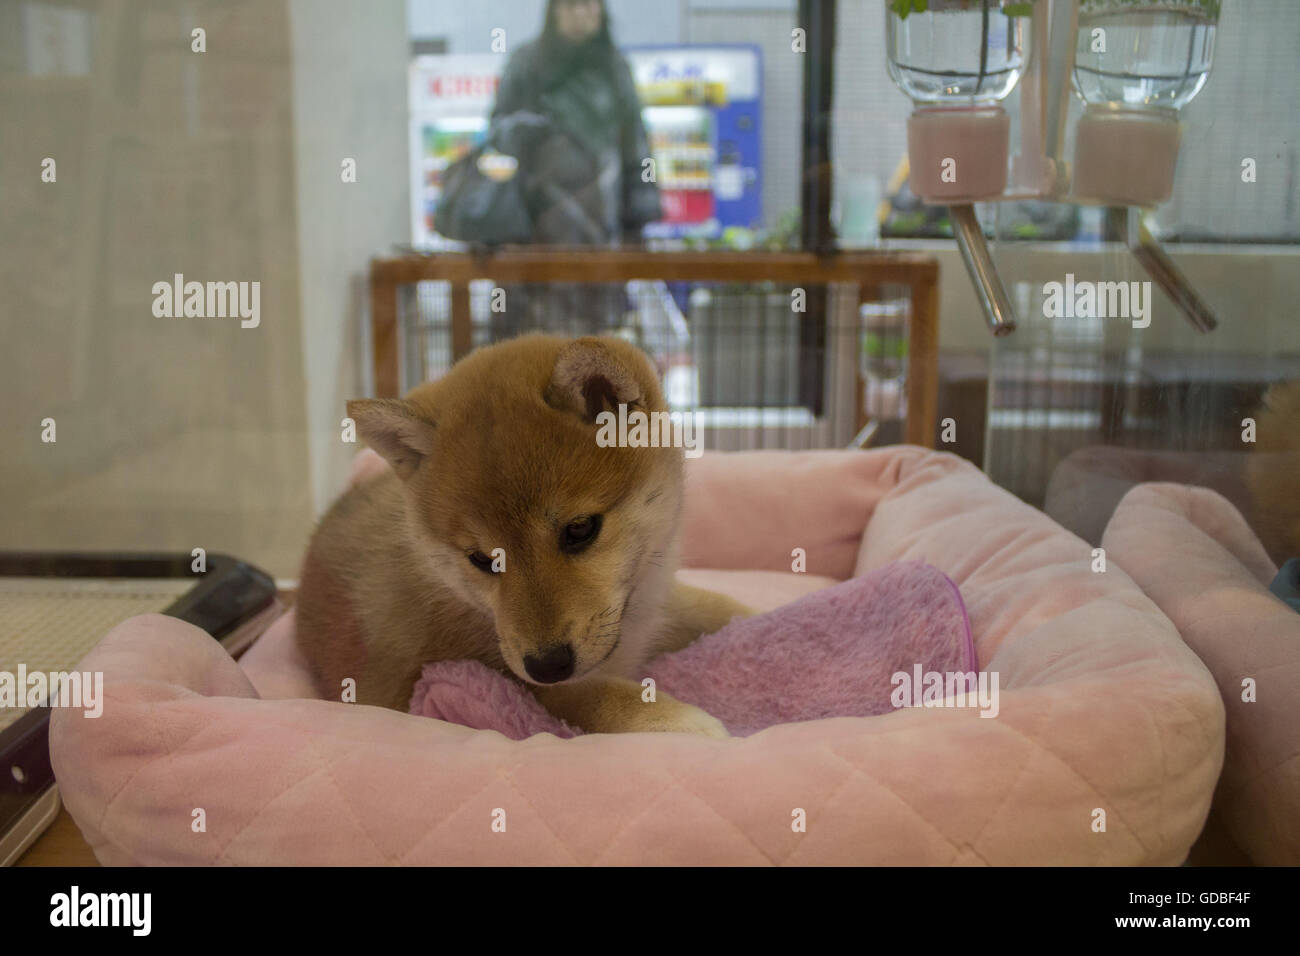 Shiba Inu Puppy In A Pet Store In Tokyo Japan Stock Photo Alamy